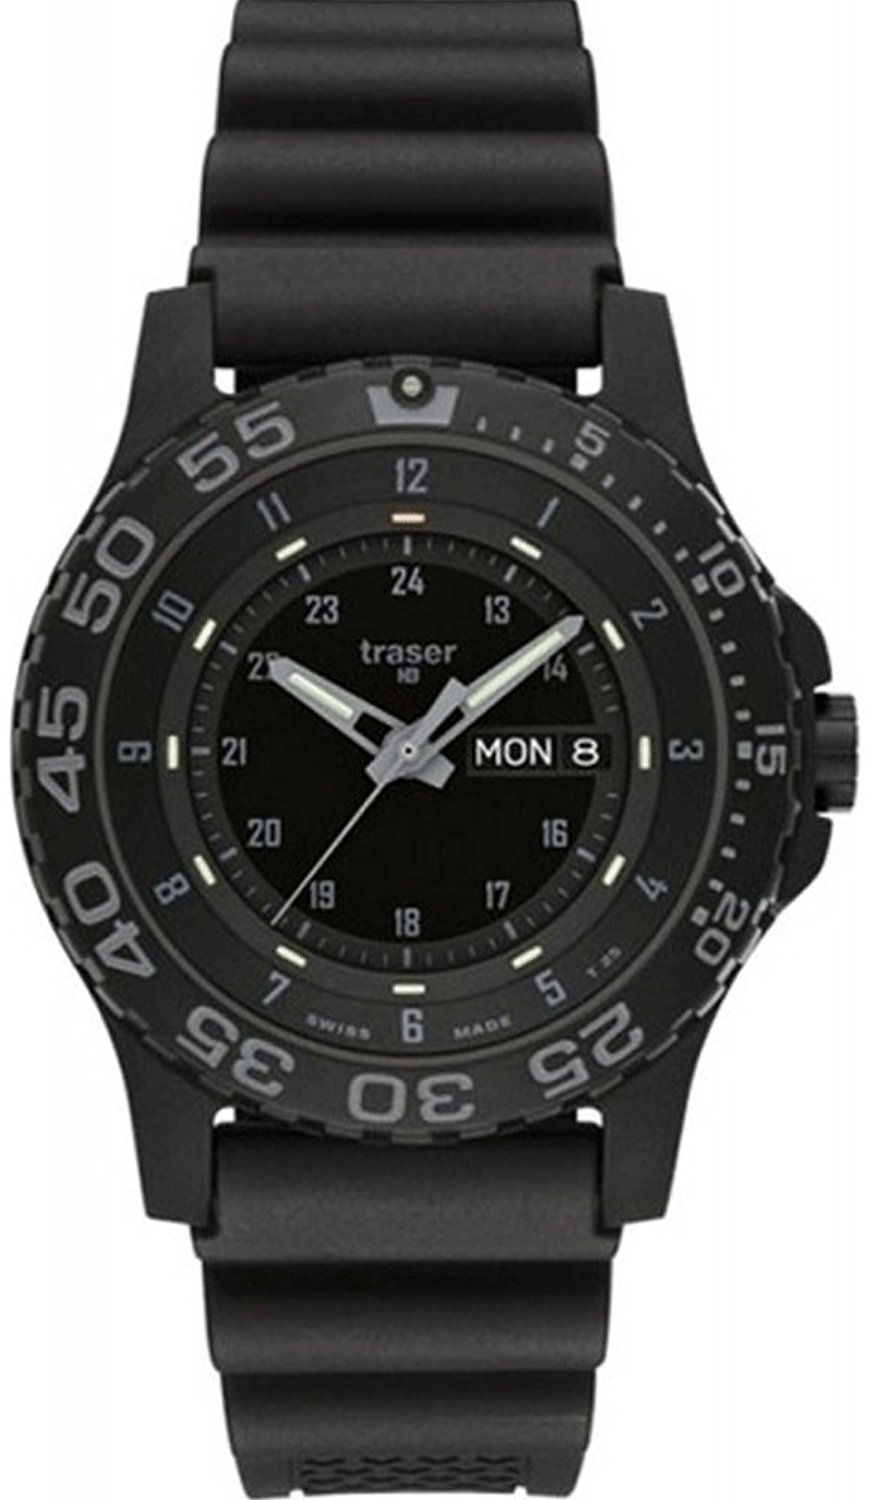 Traser Tritium Watch - Tactical Collection - P 6600 Shade w/ Rubber Strap - 104207